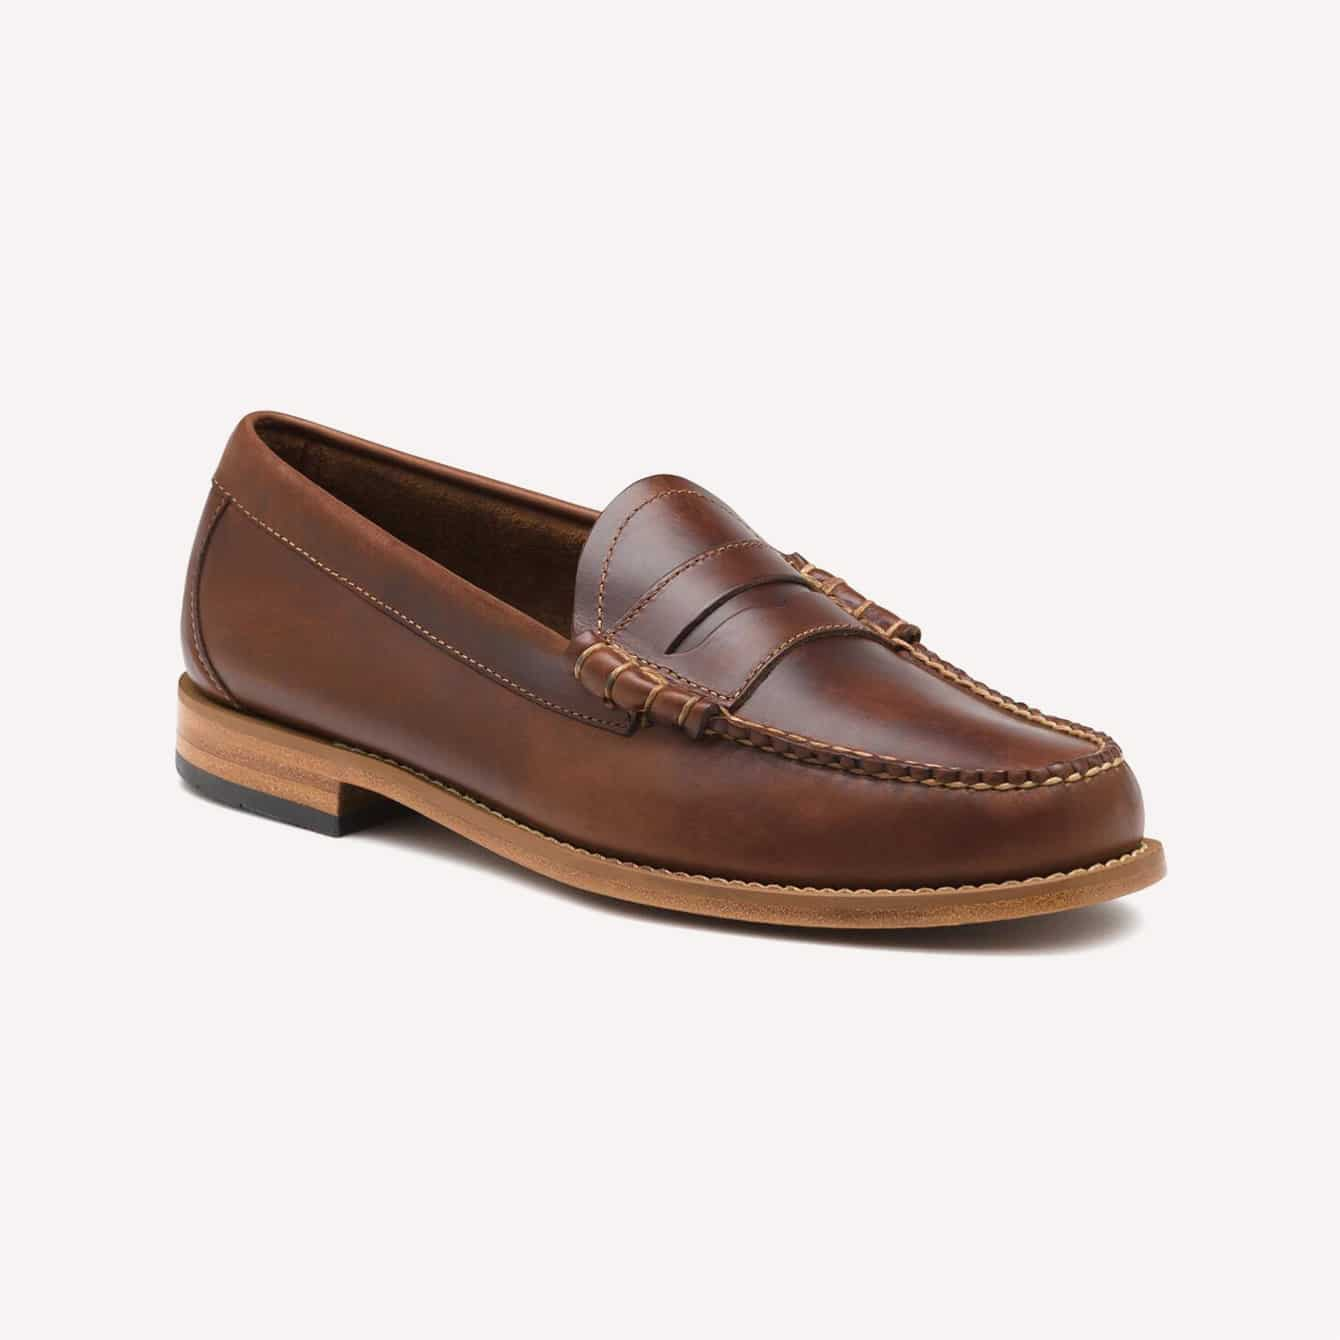 G.H. Bass Larson Weejuns loafer